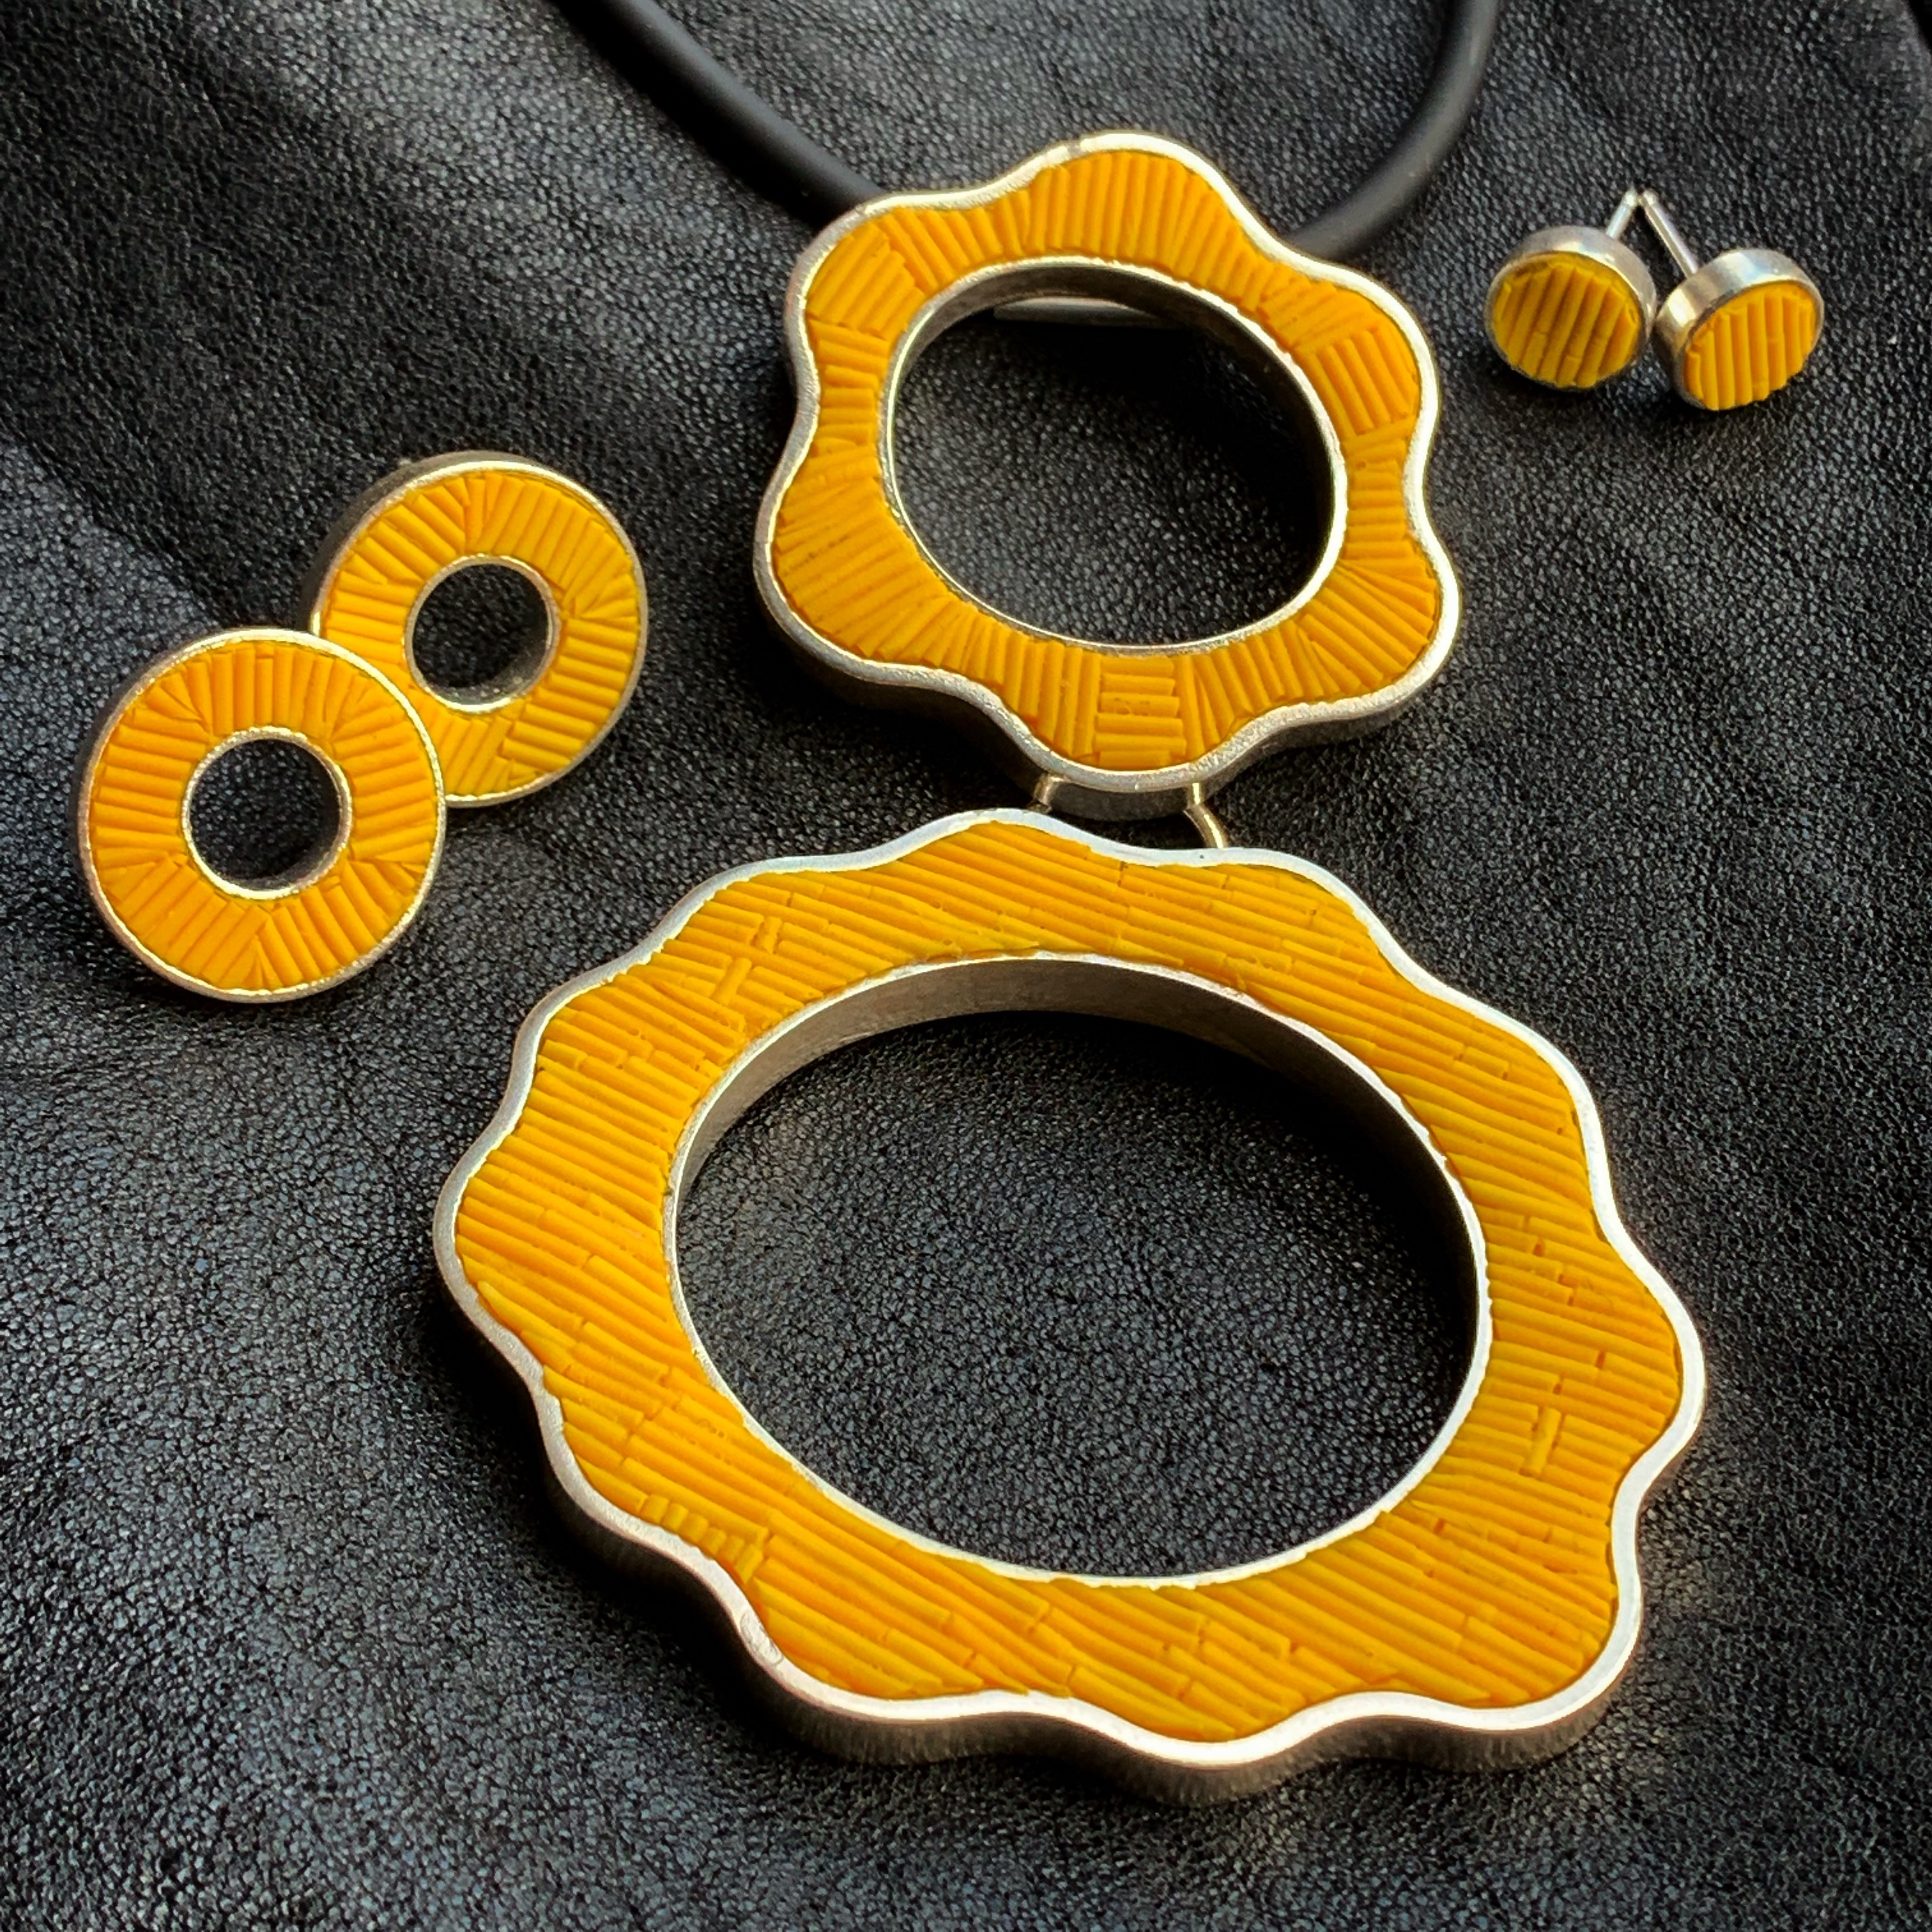 Polymer inlay in sterling silver. Necklace, post earrings, and tiny stud earrings. Work by Tegan Wallace.